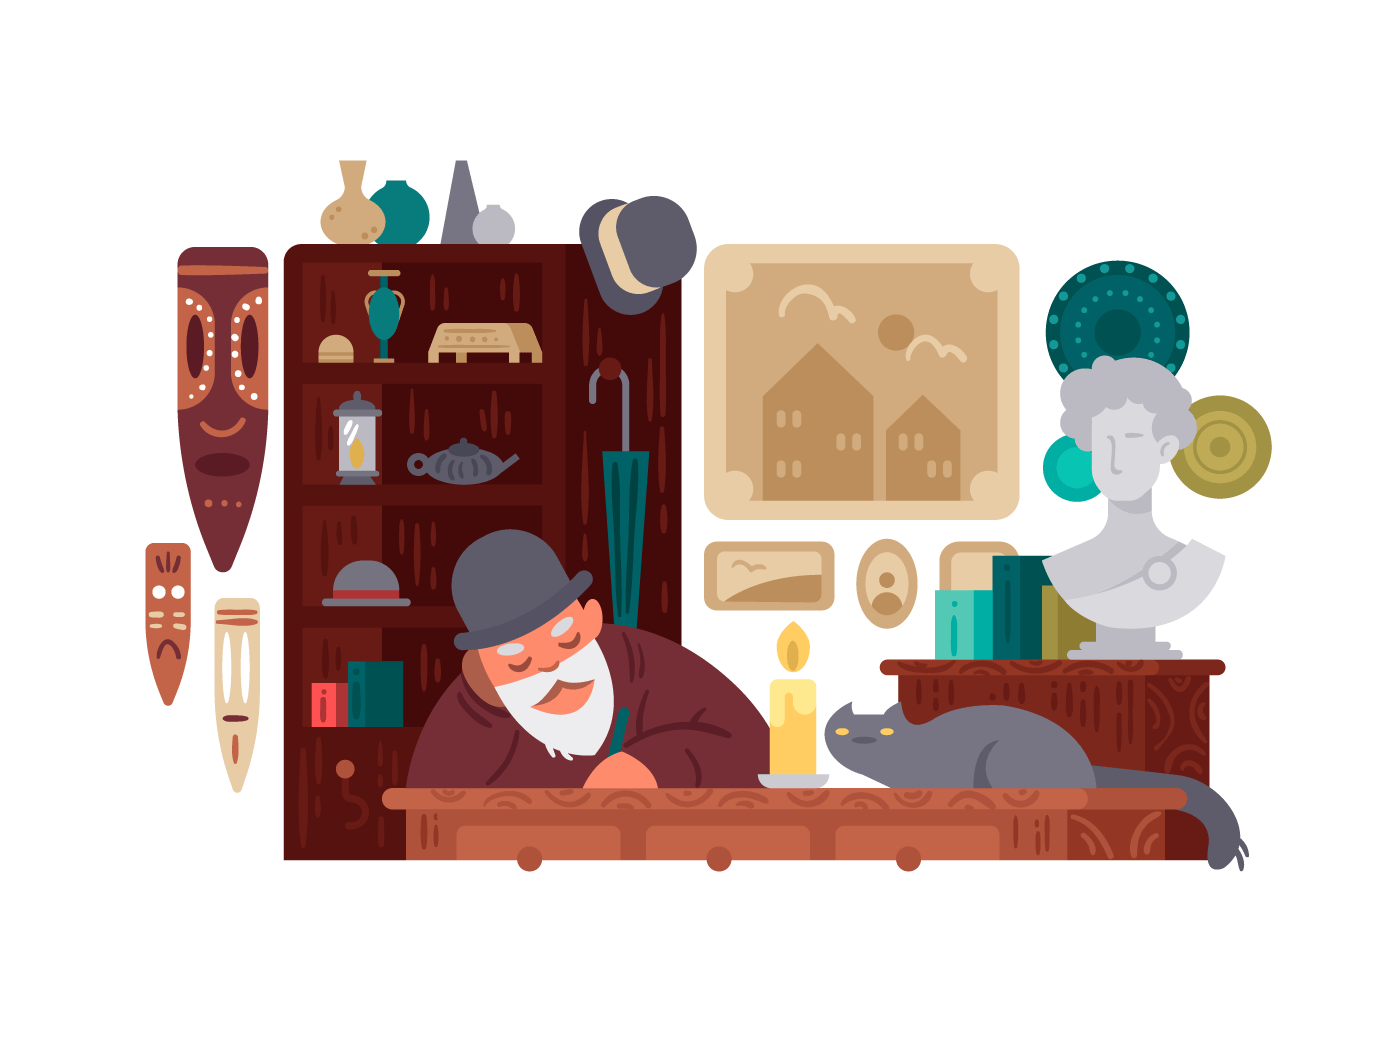 Seller antique shop illustration